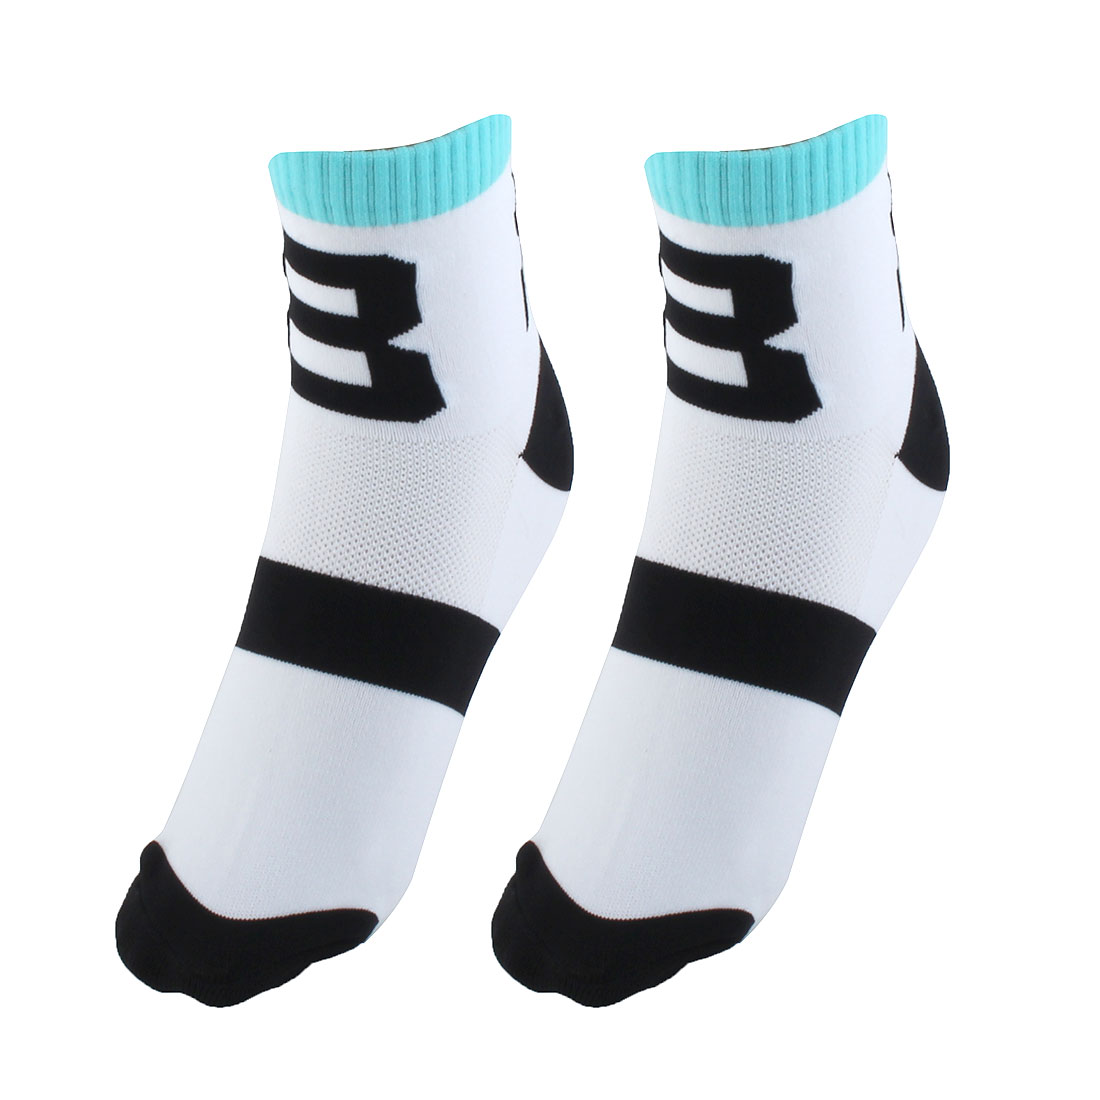 R-BAO Authorized Bicycle Football Mountain Bike Cotton Blend Compression Sports Cycling Socks White Pair